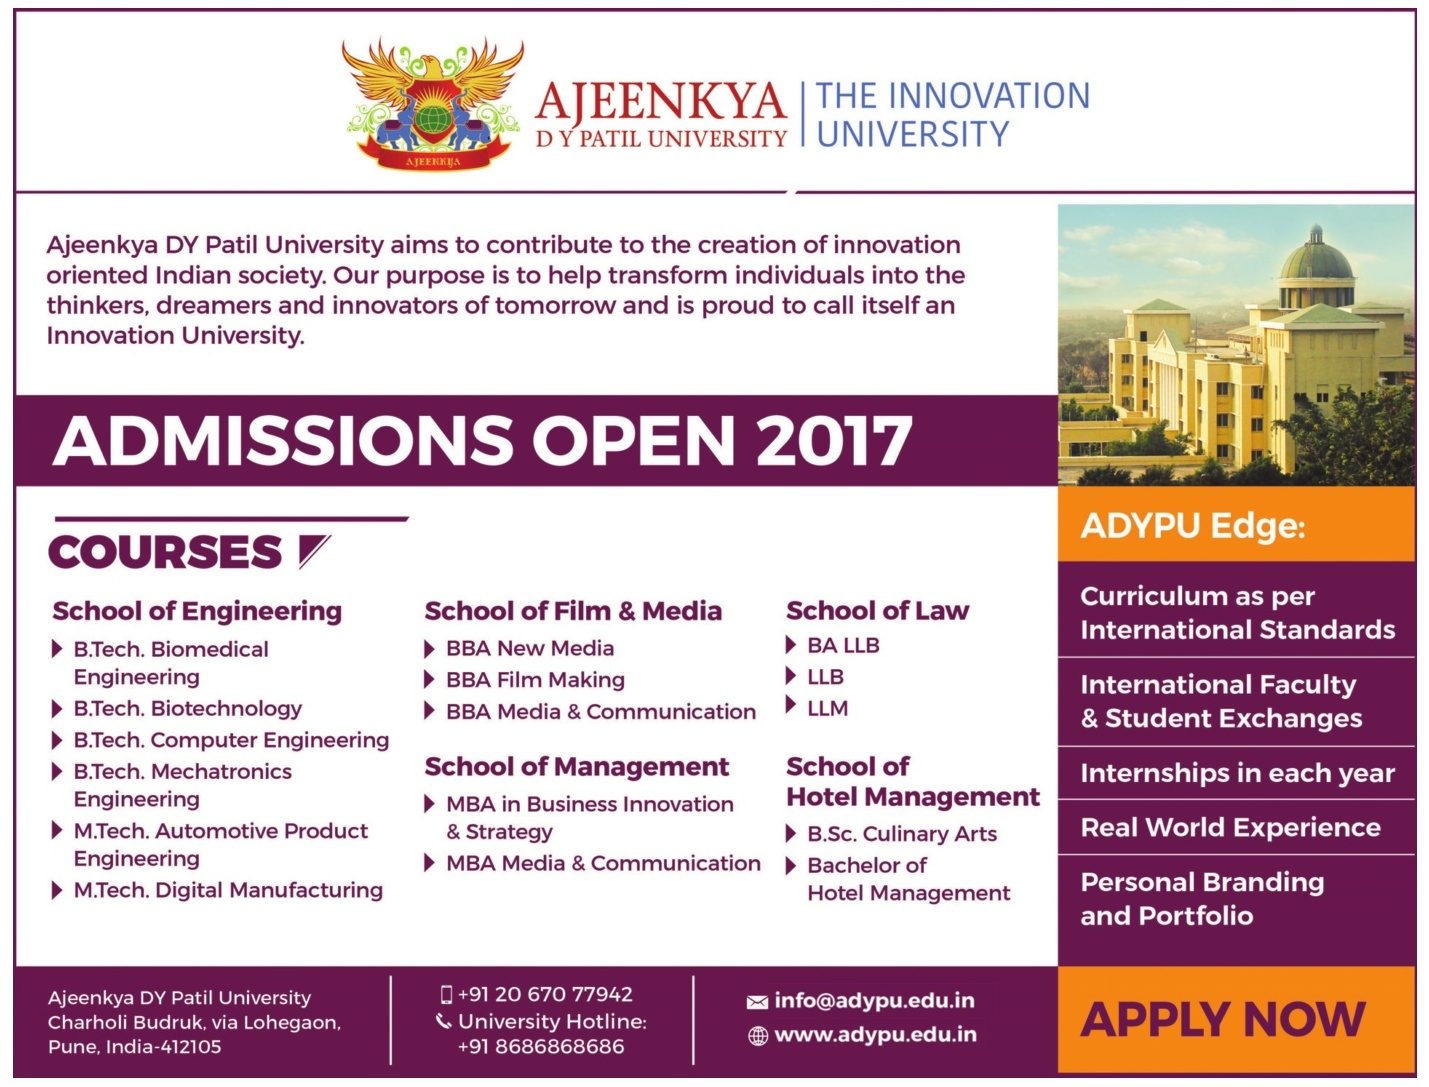 ADYPU (PUNE) ADMISSION FOR UG/PG COURSES